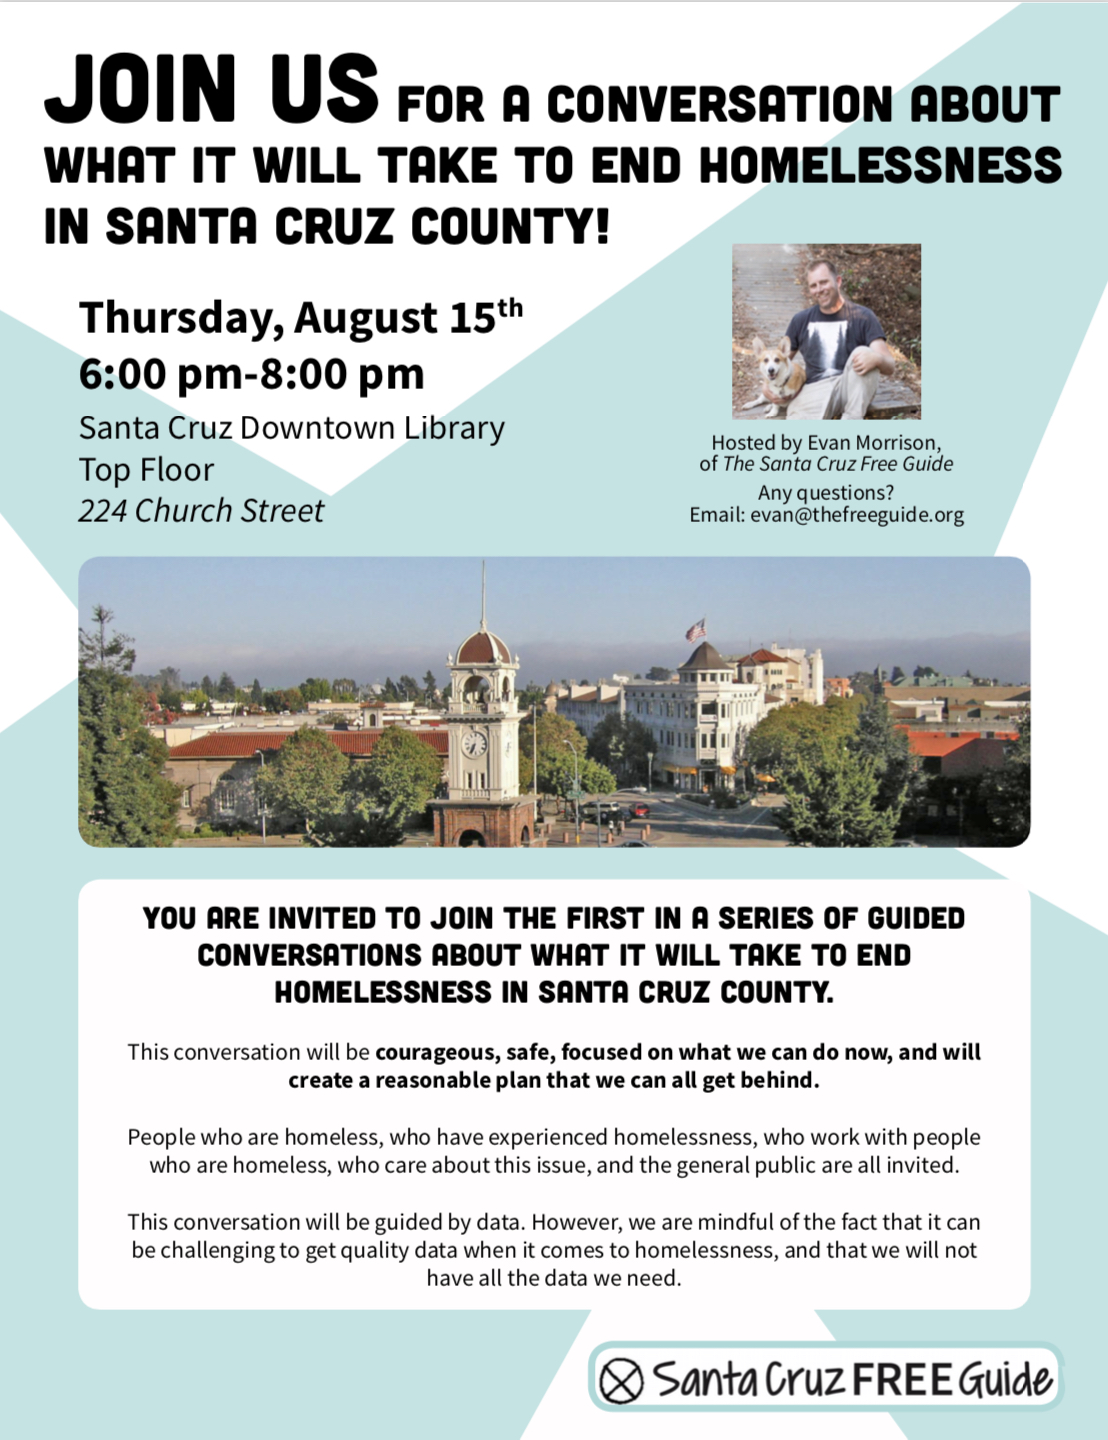 Let's Take On Ending Homelessness in Santa Cruz